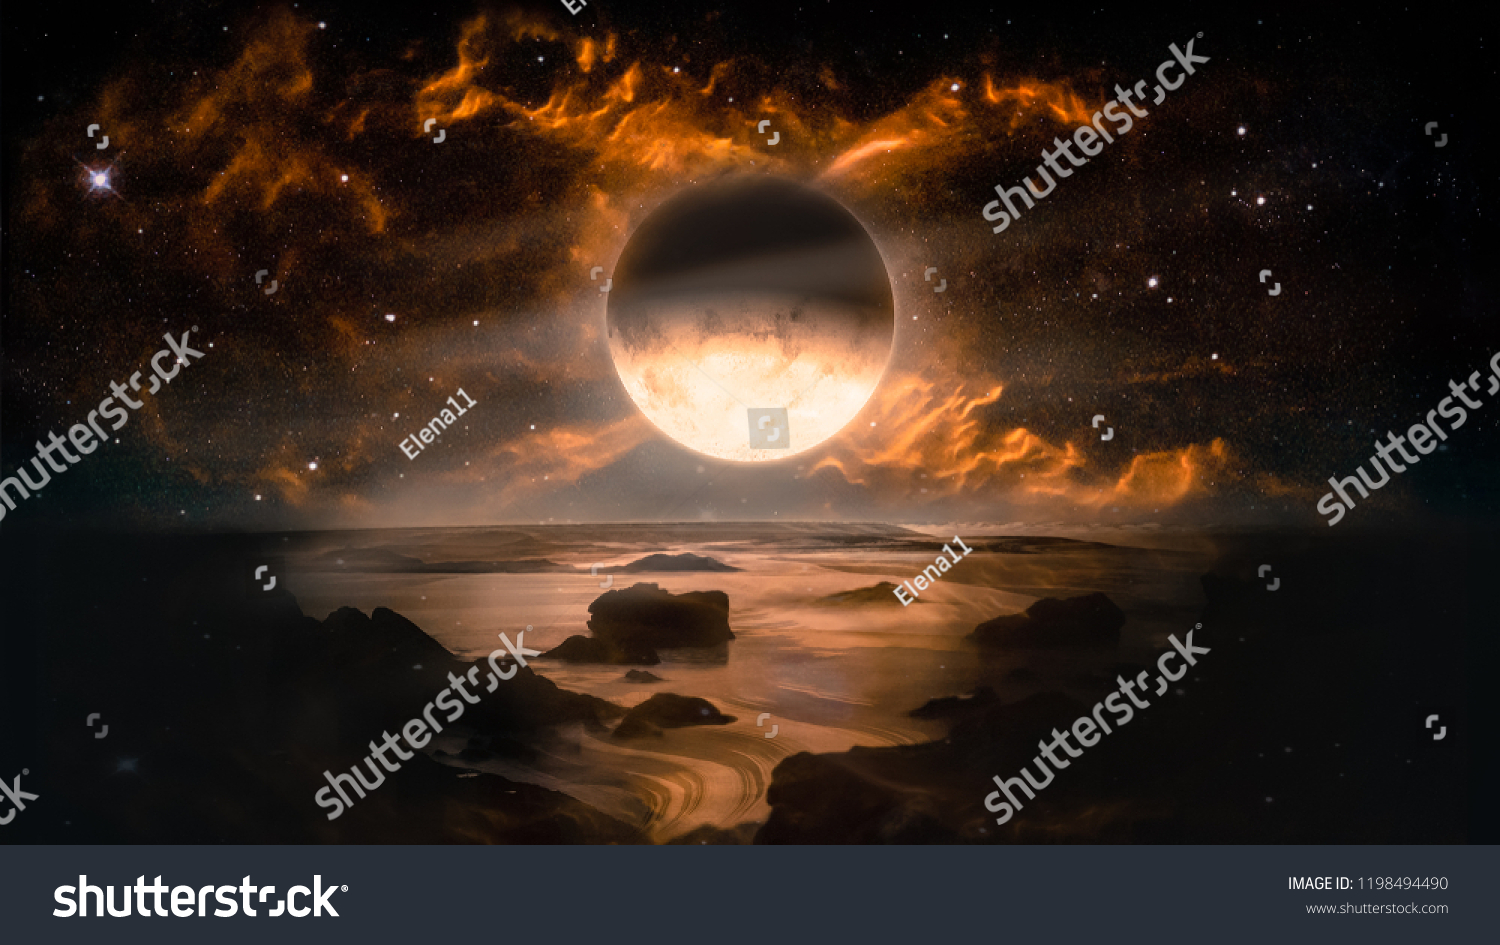 Landscape in fantasy alien planet with flaming moon and galaxy background. Elements of this image furnished by NASA #1198494490